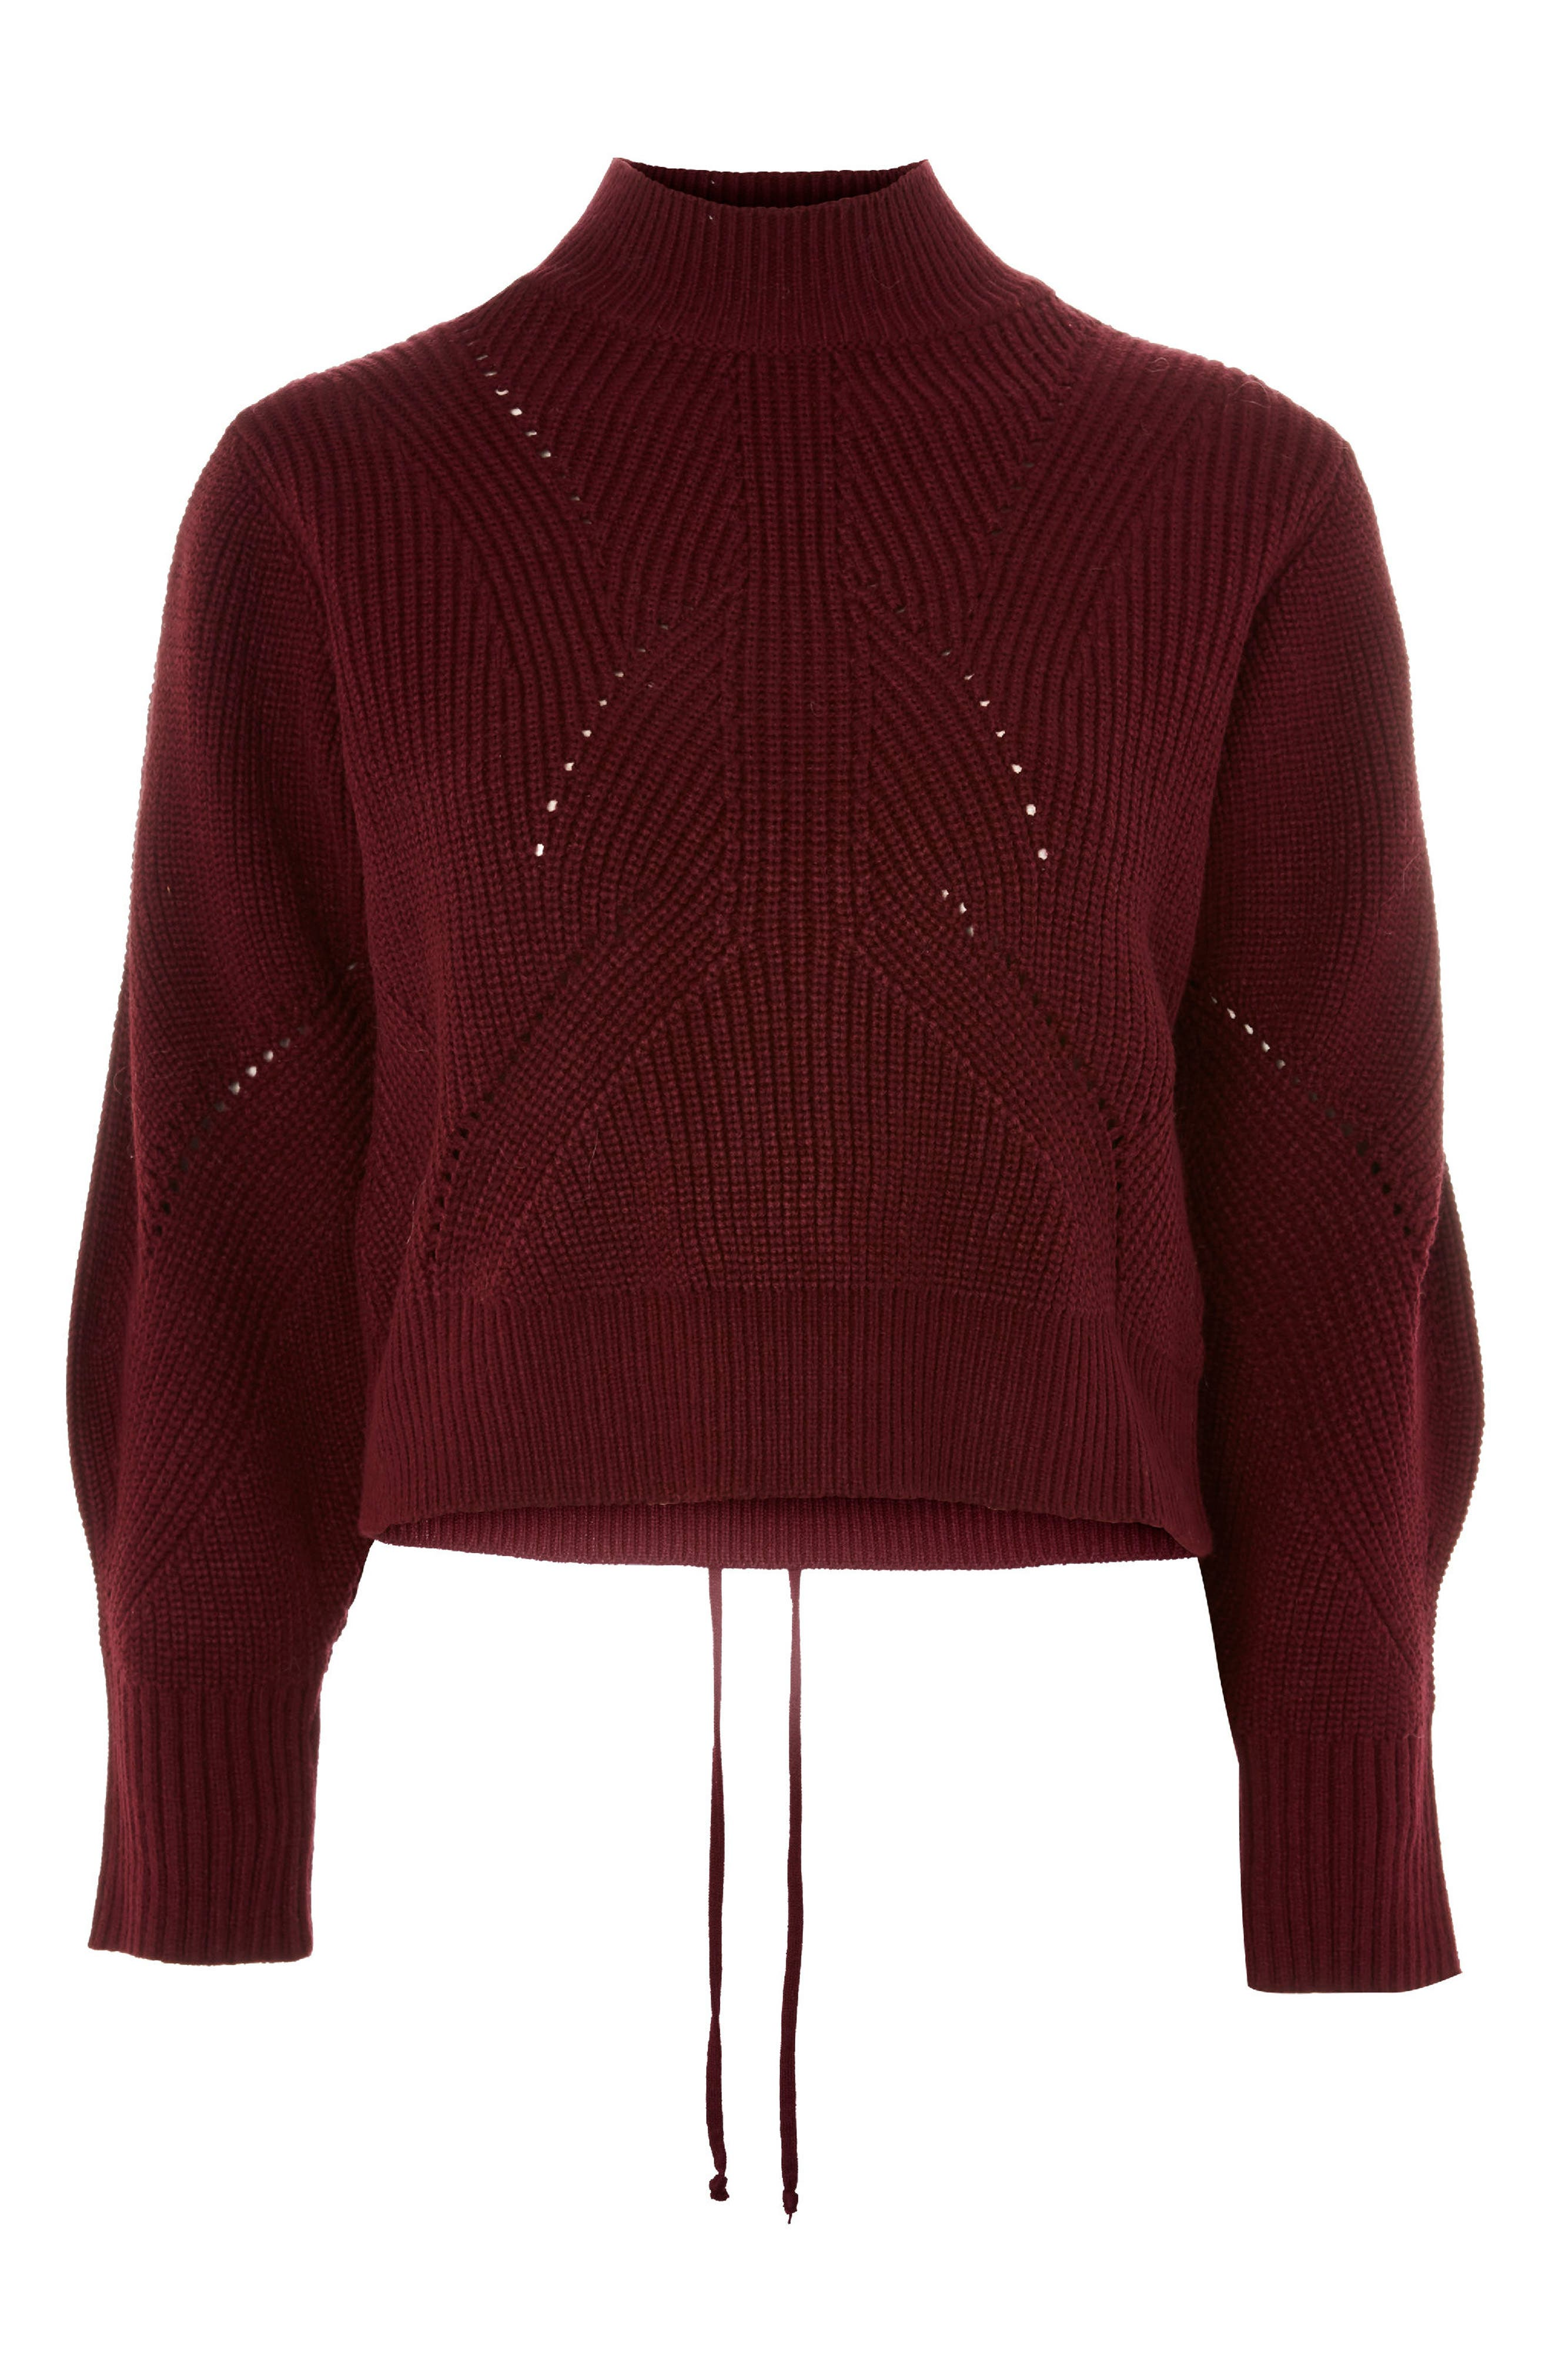 Lace-Up Back Sweater,                             Alternate thumbnail 3, color,                             640